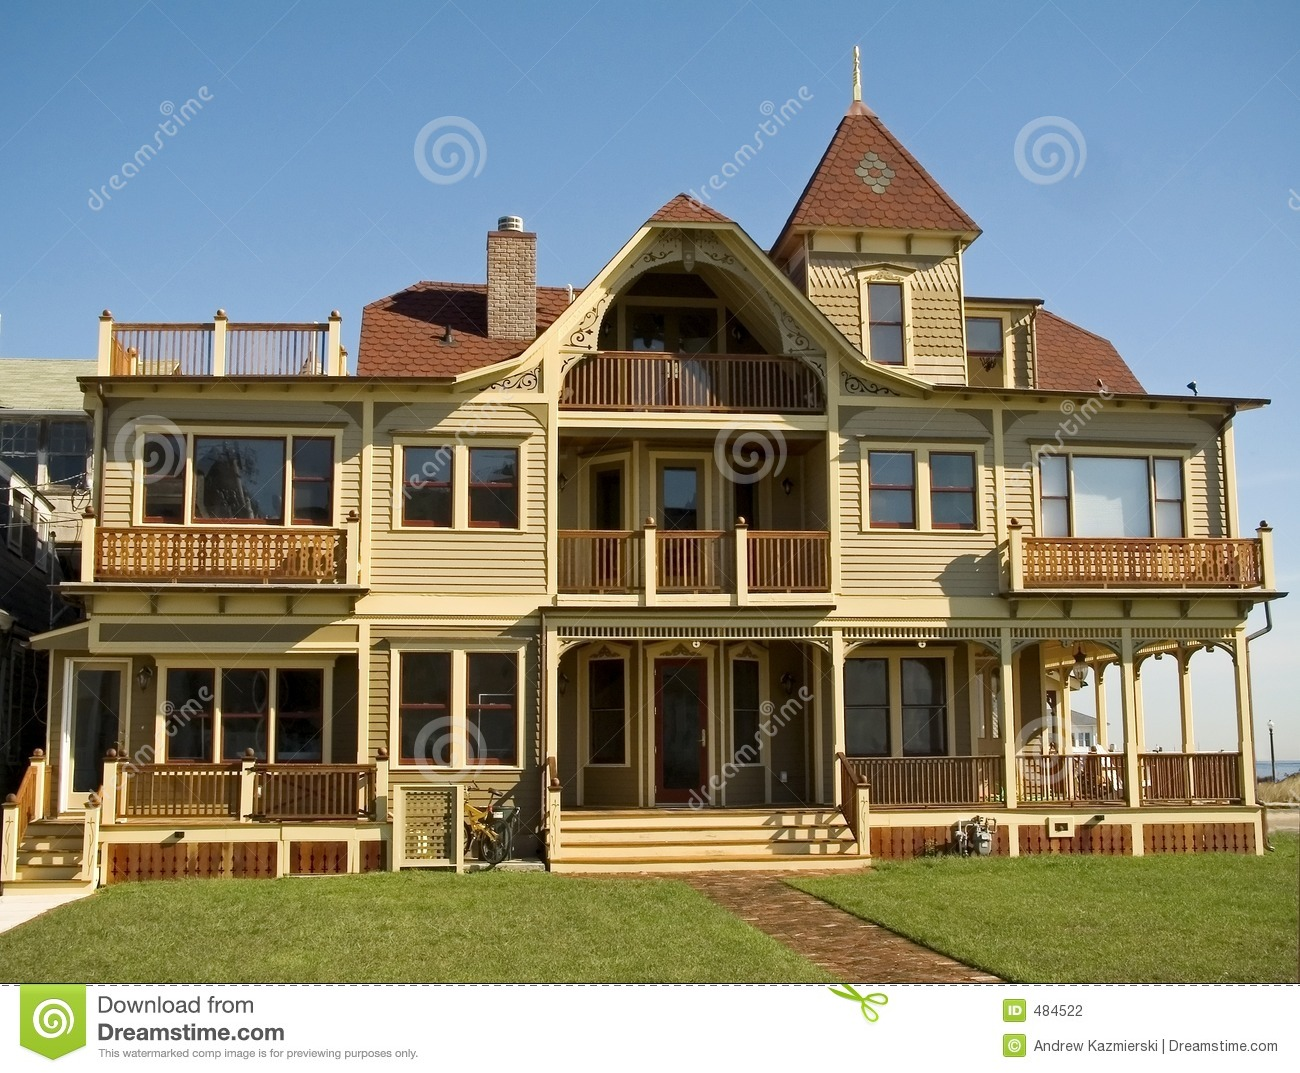 Modern victorian stock photography image 484522 Modern victorian architecture